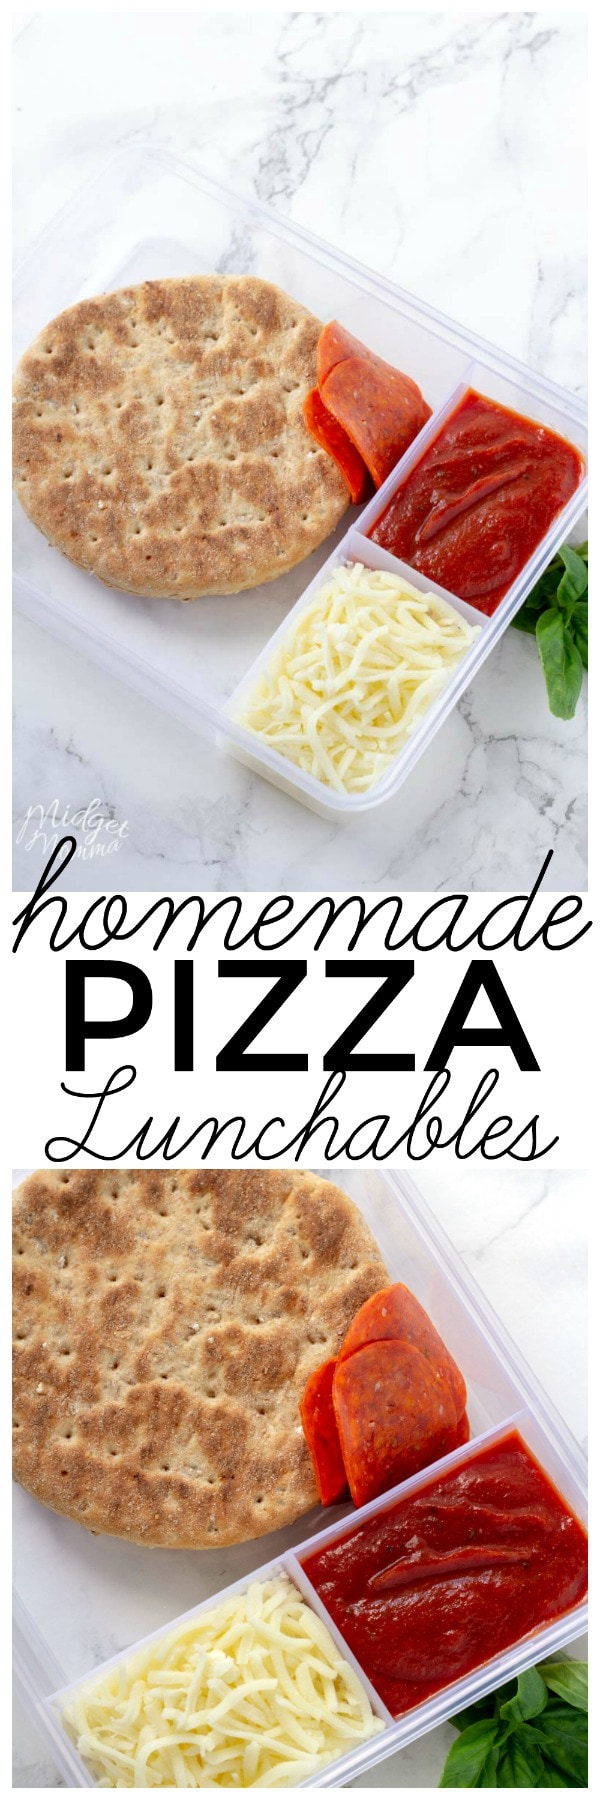 If you are looking for an easy and fun lunch for the kids then you are going to love these homemade pizza lunchables. Packing pizza in your kids lunch box is easy with this homemade lunchables pizza. Homemade lunchables made with homemade pizza sauce are the perfect lunch to pack in the kids lunchboxes. #pizza #lunchbox #lunchable #homemadepizza #lunchpizza #pizzalunchable #Homemadelunchable #packinglunch #lunchboxideas